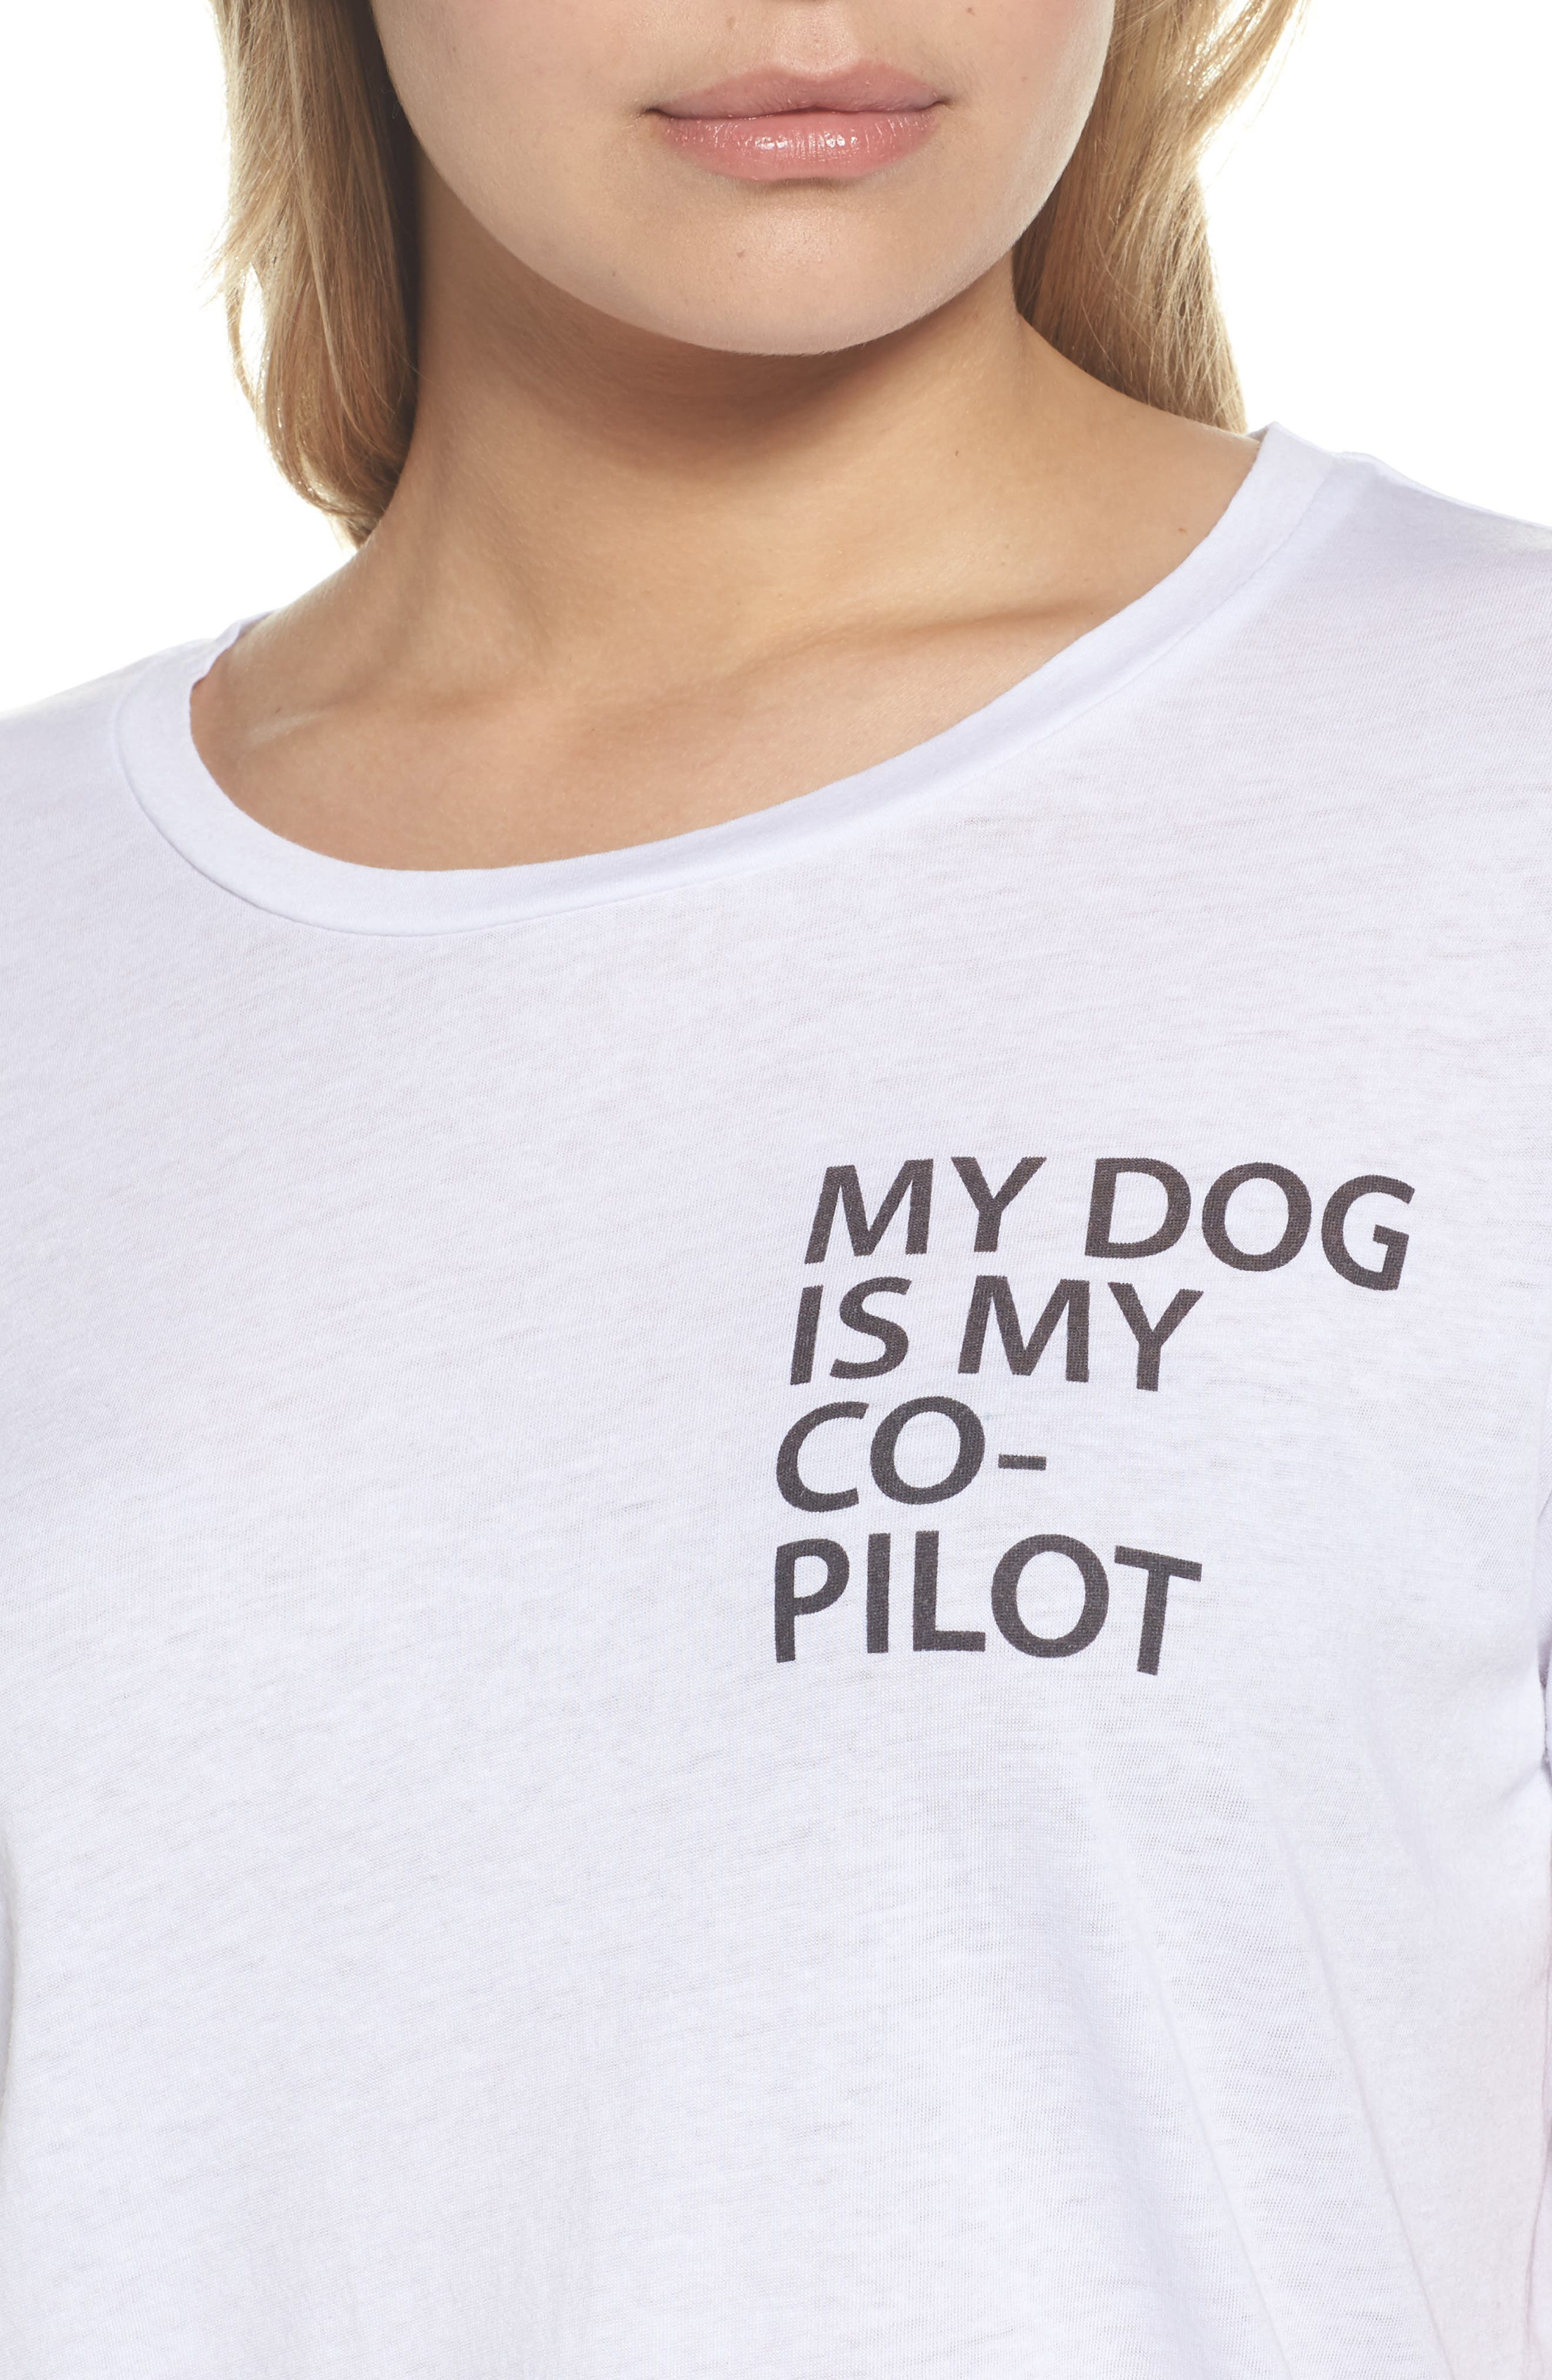 My Dog is My Co-Pilot Tee,                             Alternate thumbnail 5, color,                             White